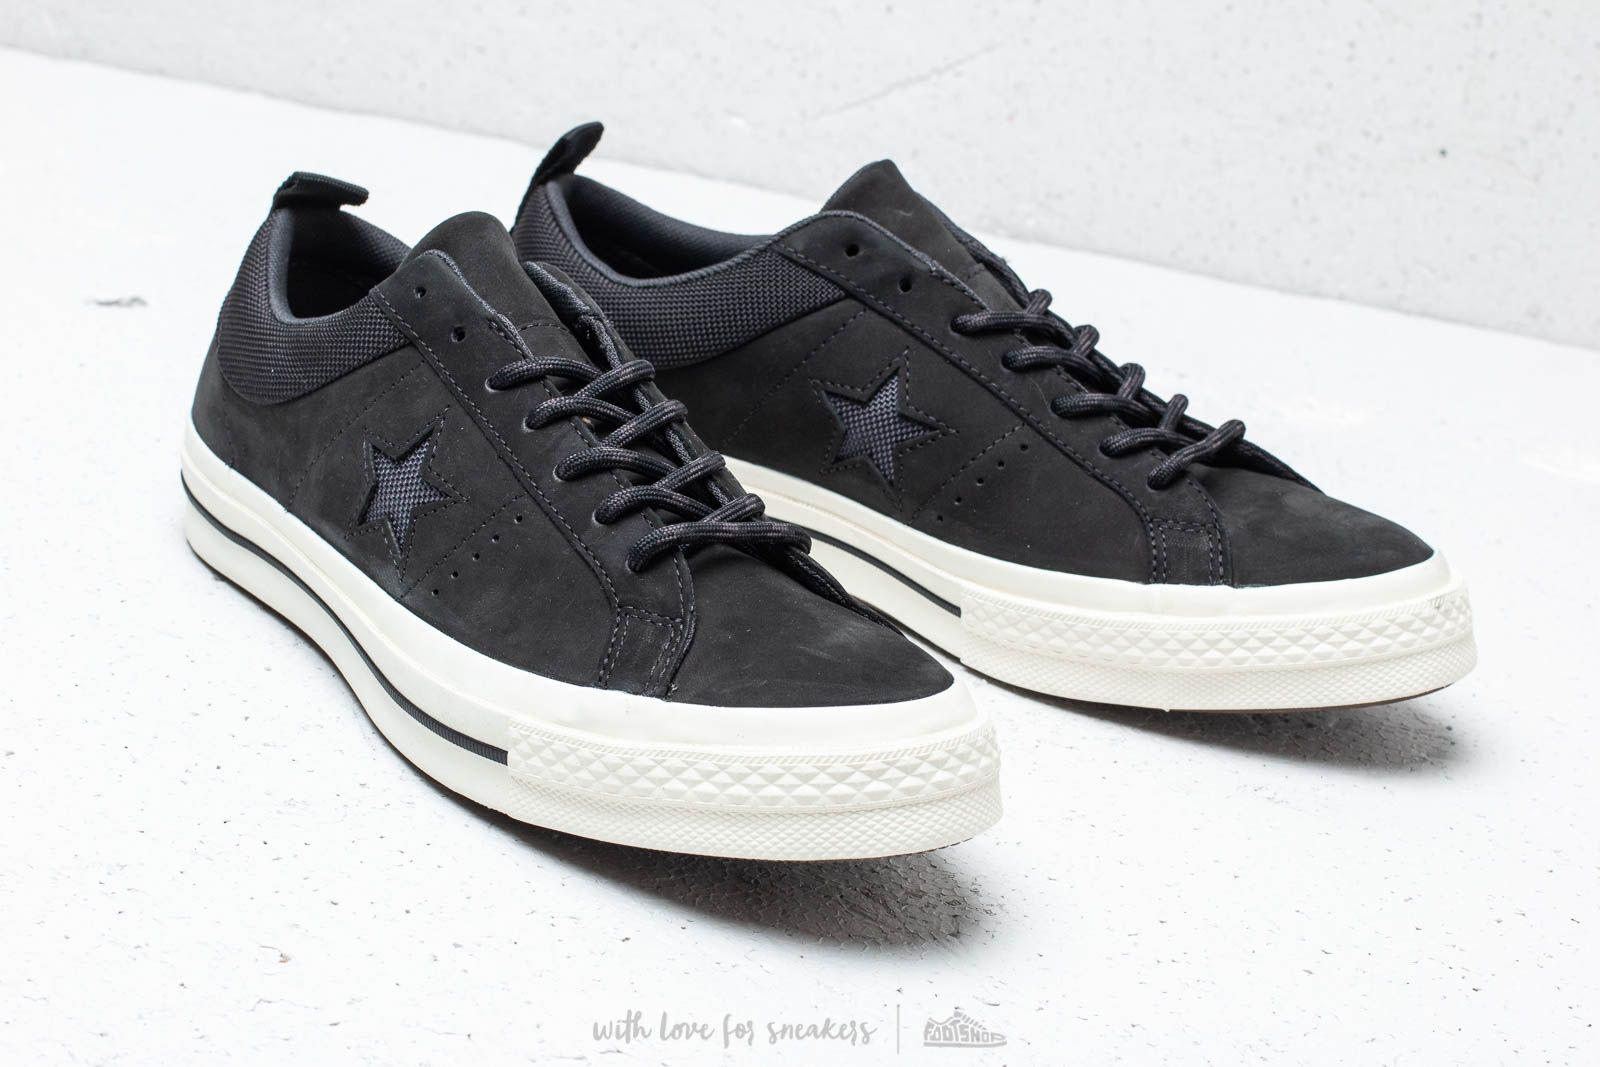 8dfc17701a4d99 Converse - One Star Ox Black  Almost Black  Black for Men - Lyst. View  fullscreen